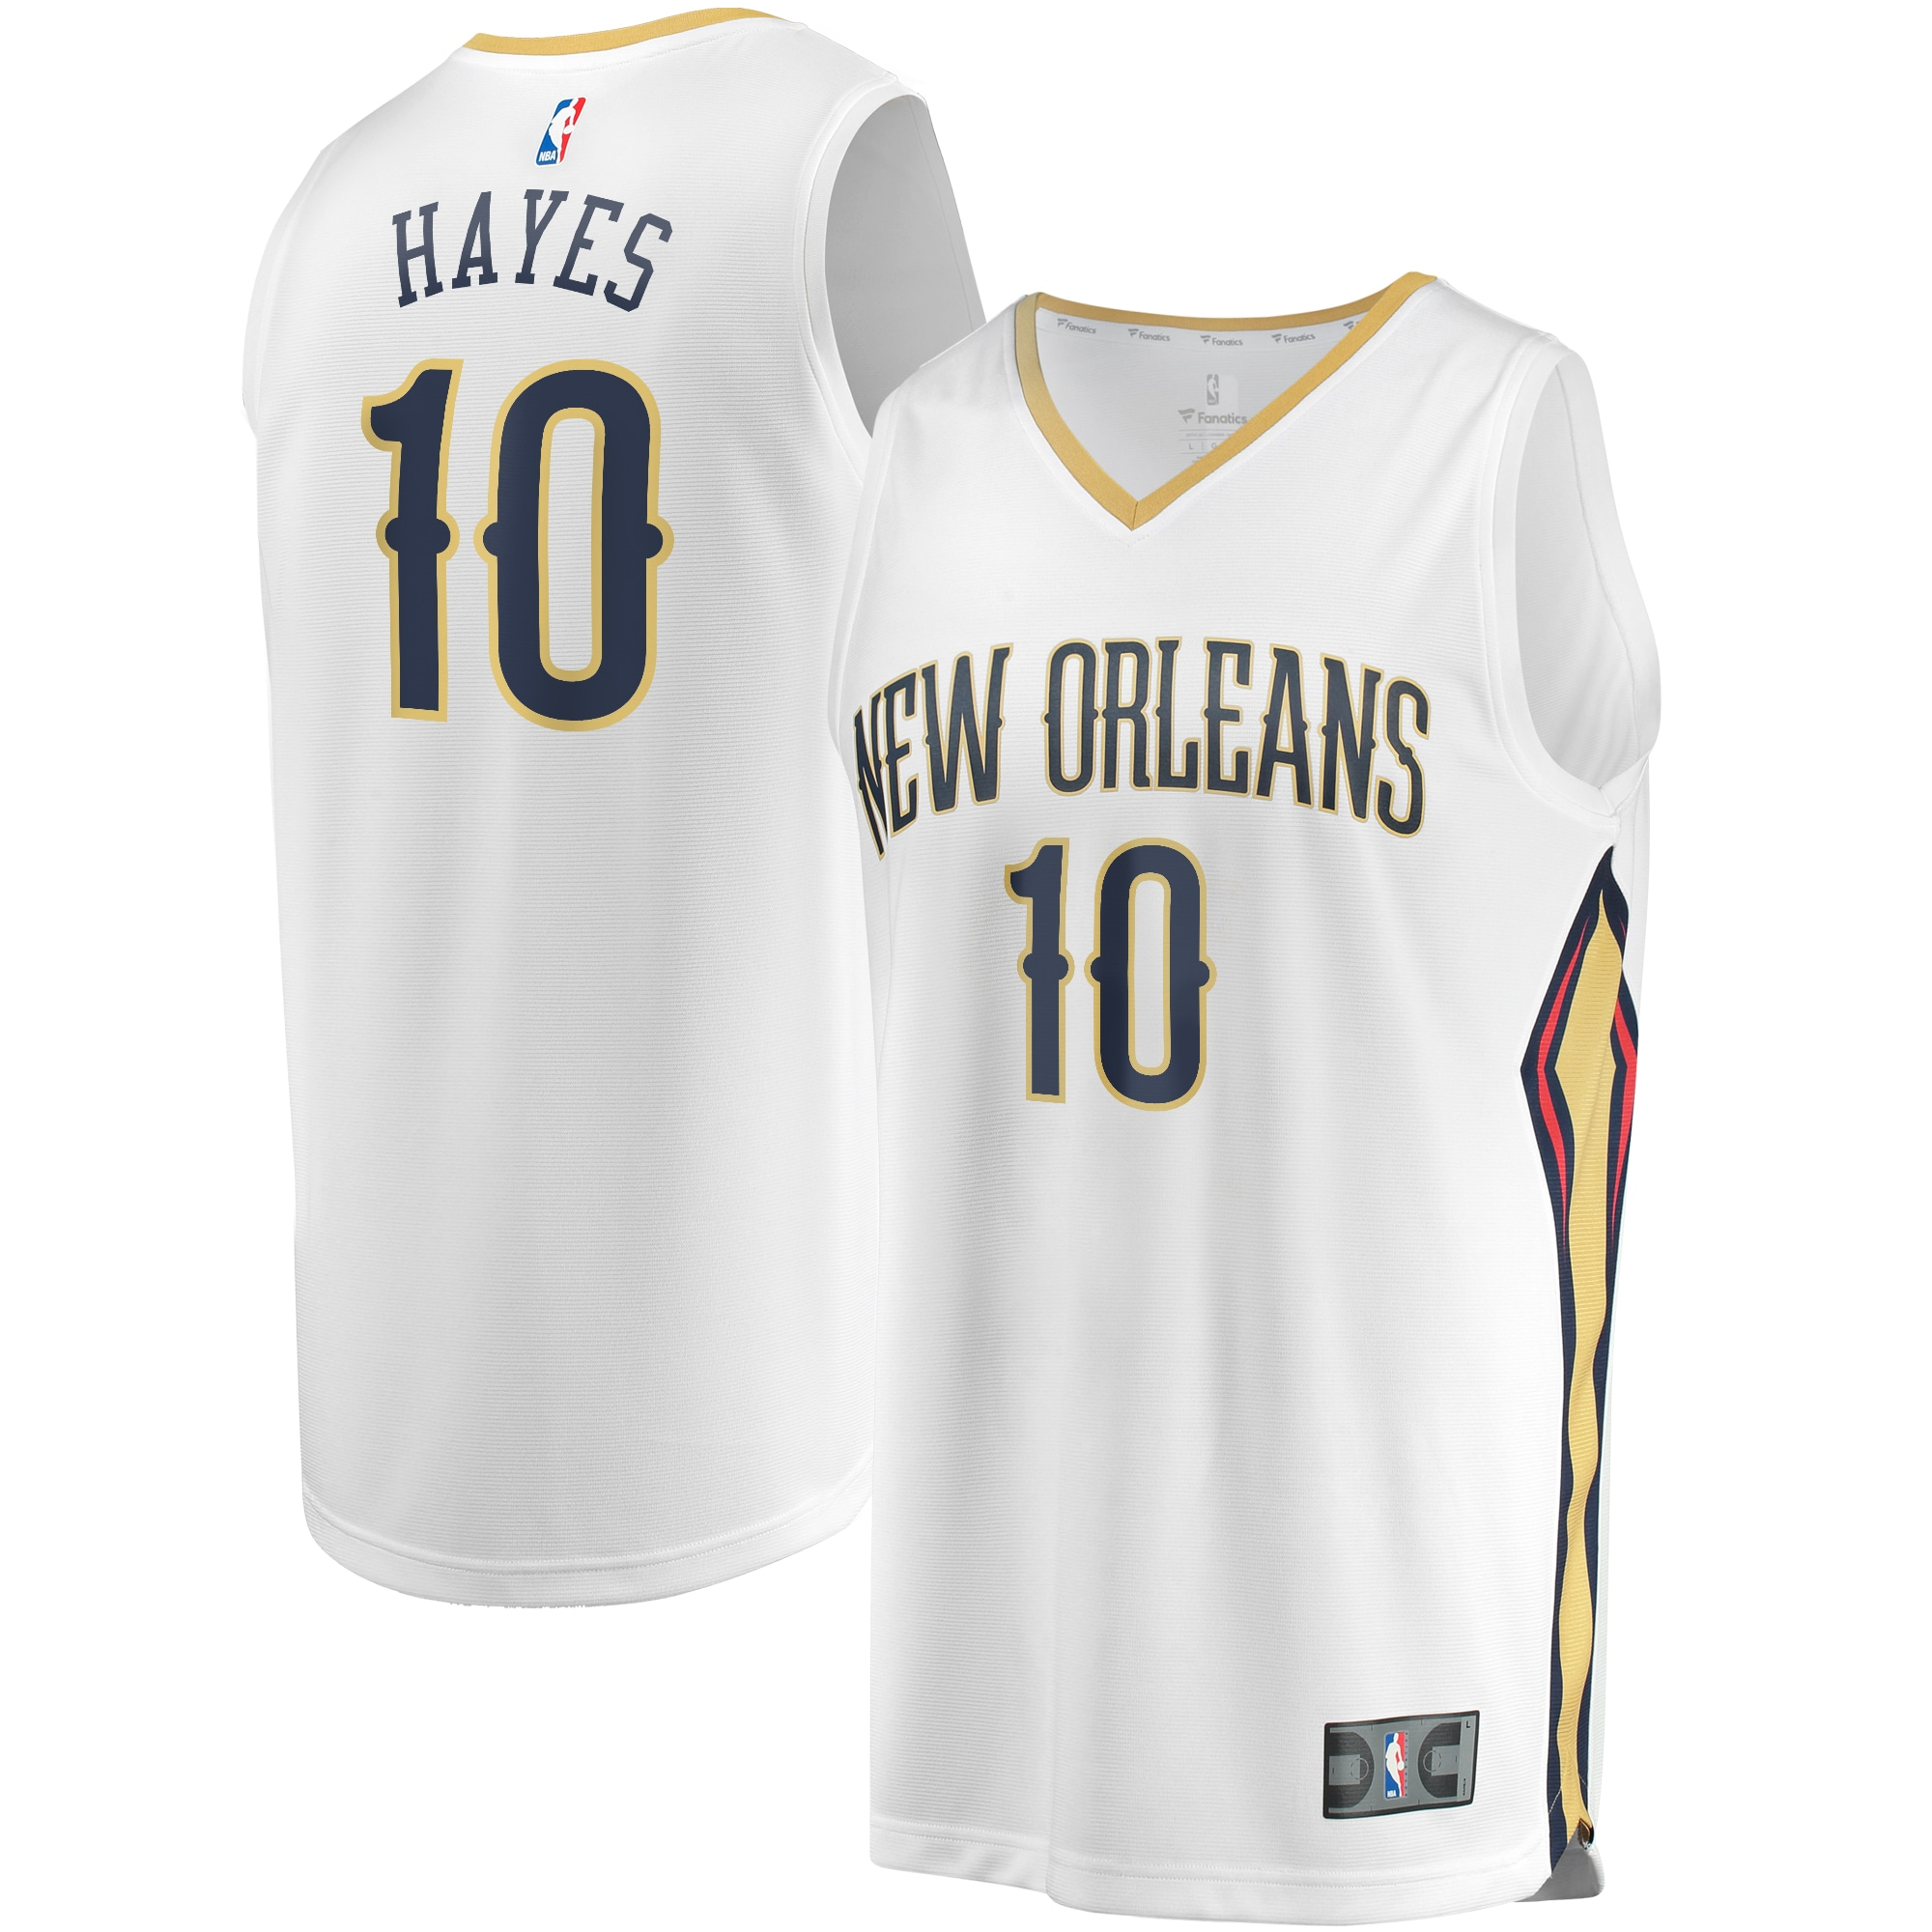 Jaxson Hayes New Orleans Pelicans Fanatics Branded Youth Fast Break Replica Jersey White - Association Edition